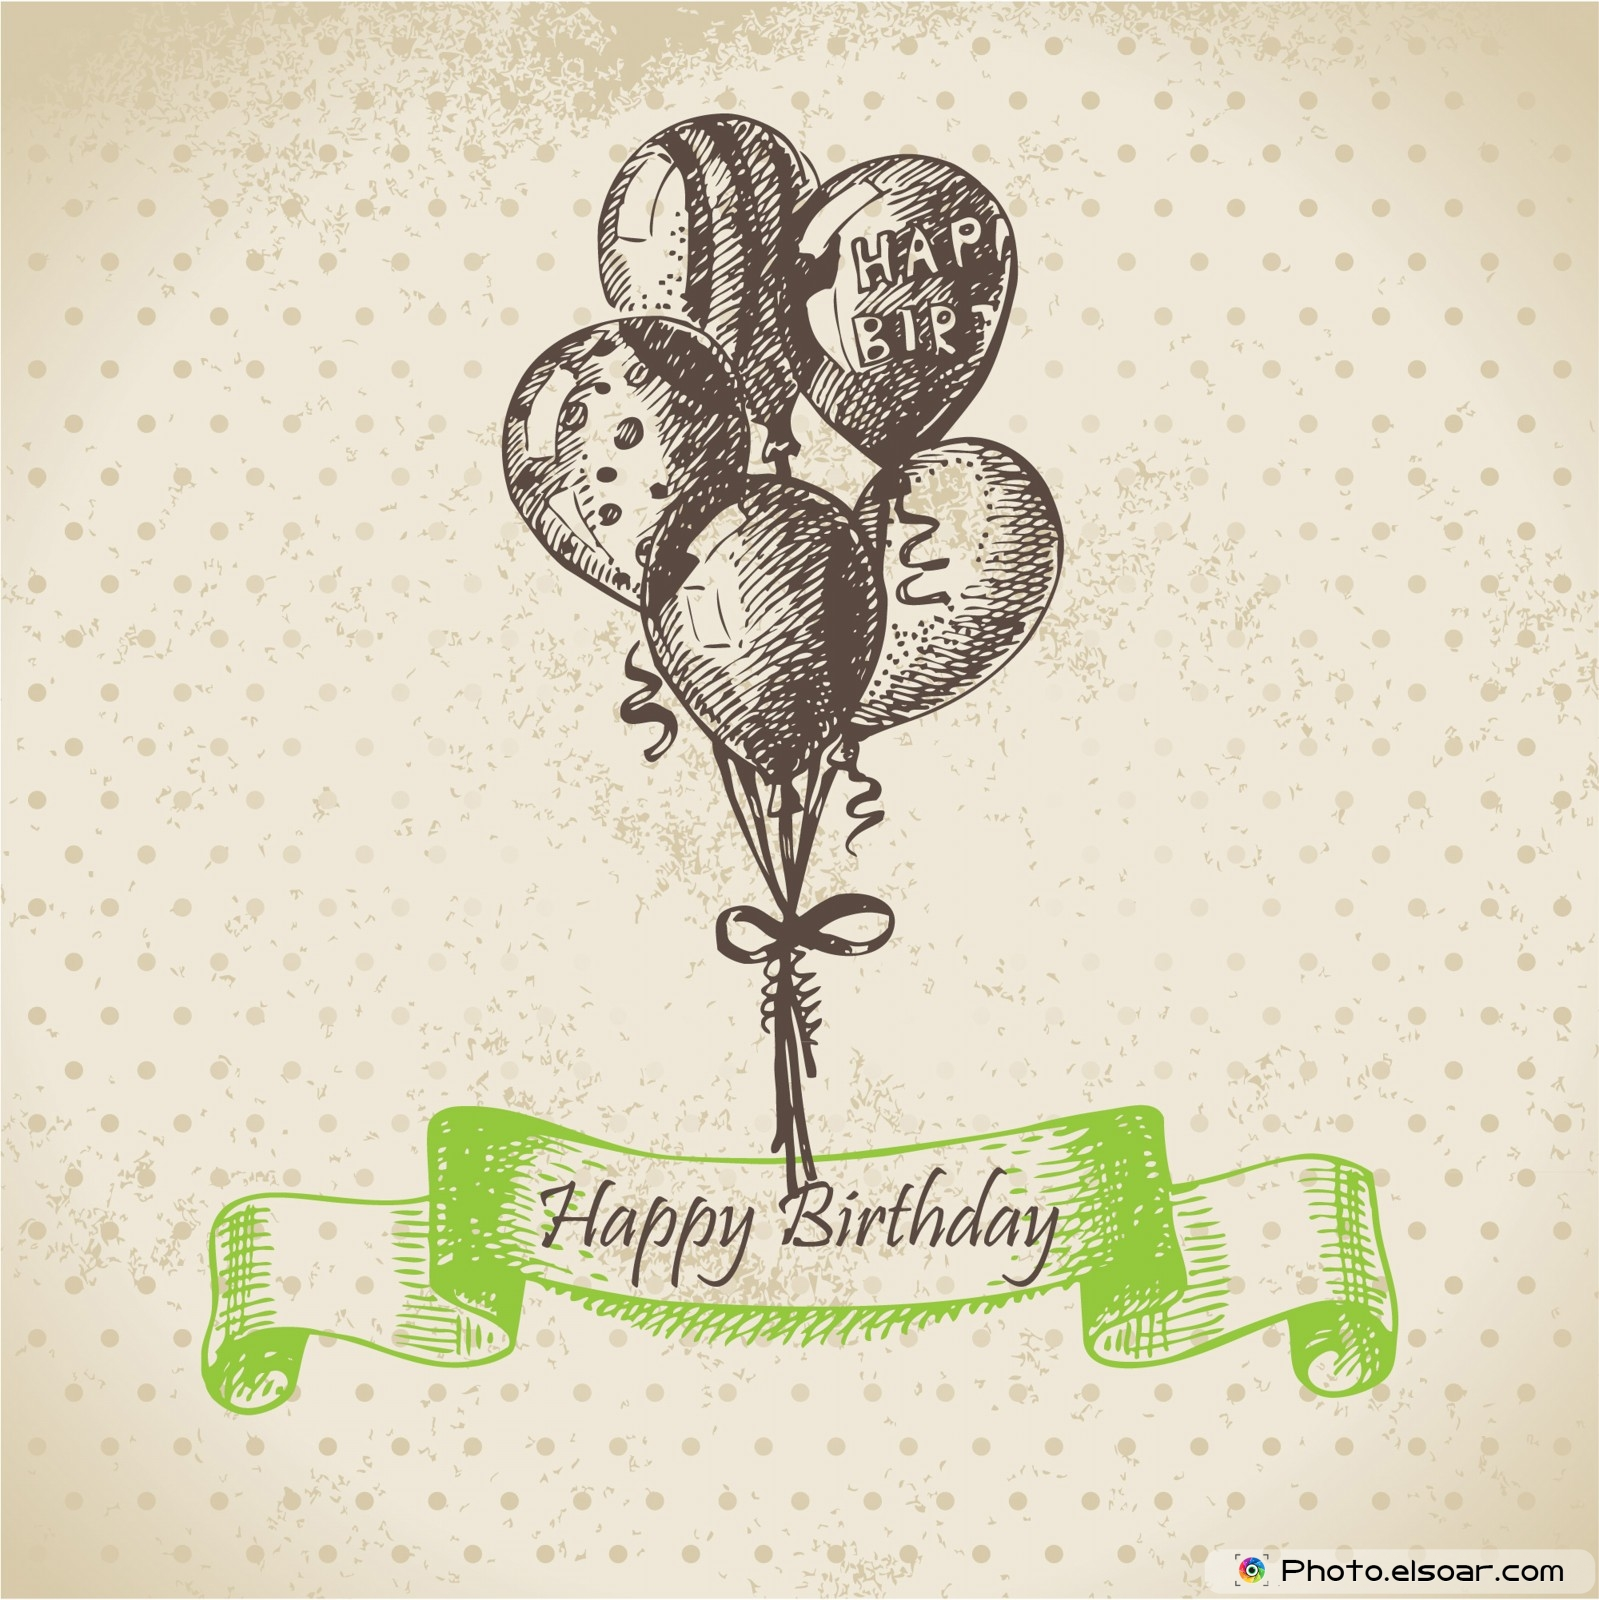 birthday greeting drawing ; Drawings-On-Birthday-Cards-is-one-of-the-best-idea-for-you-to-make-your-own-birthday-Card-design-13